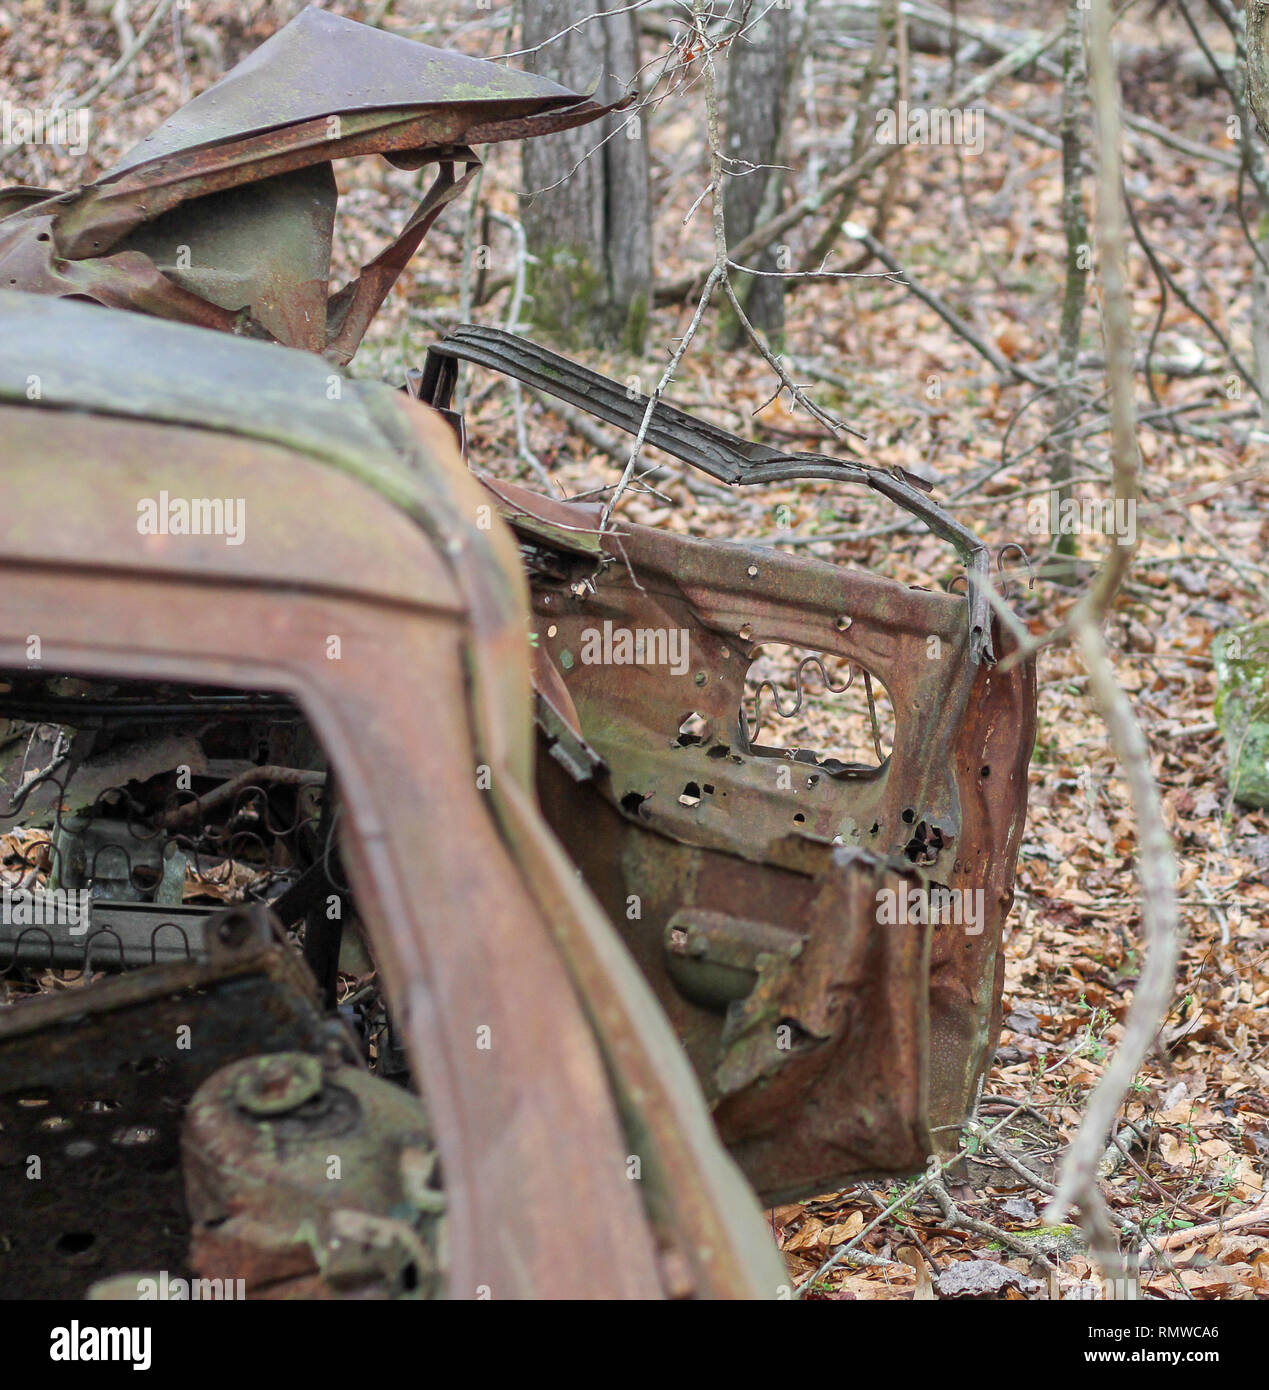 Abandoned car in the forest. - Stock Image